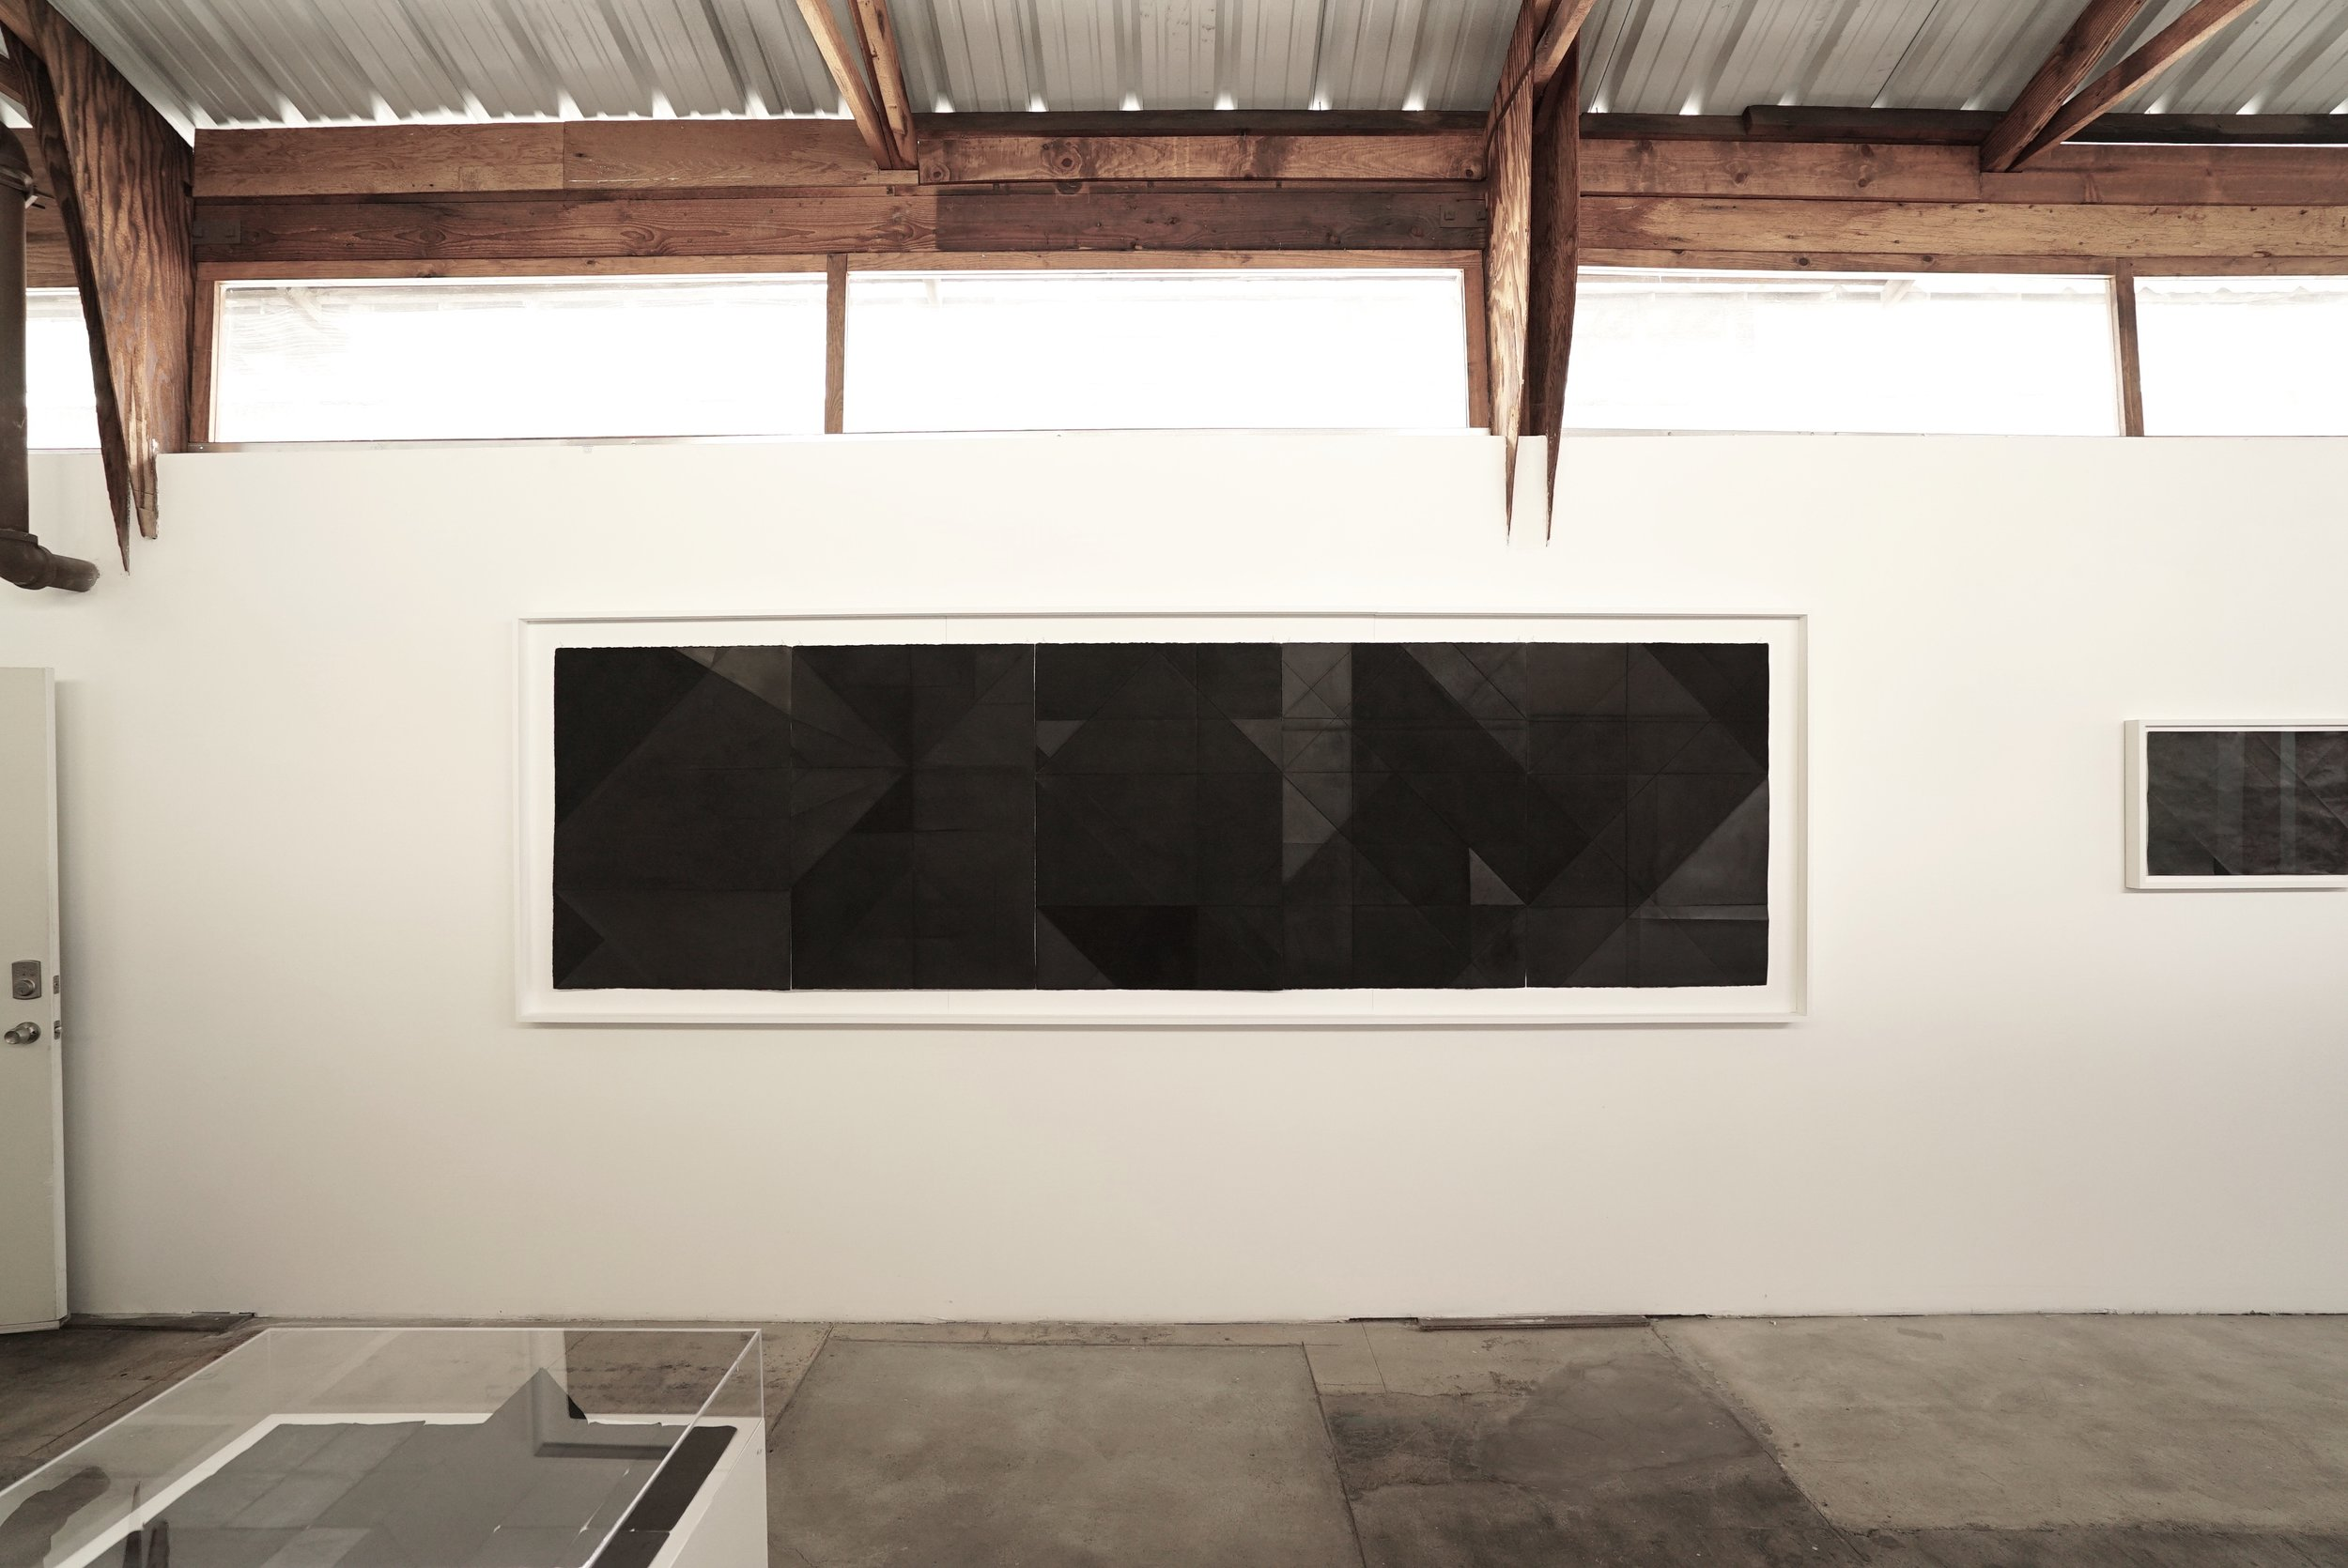 """Tectonic, 2018 Compressed Charcoal, Iron Oxide, Pigment, Oil-bar, Wax on paper  41.5 x 148""""  Pentaptych"""